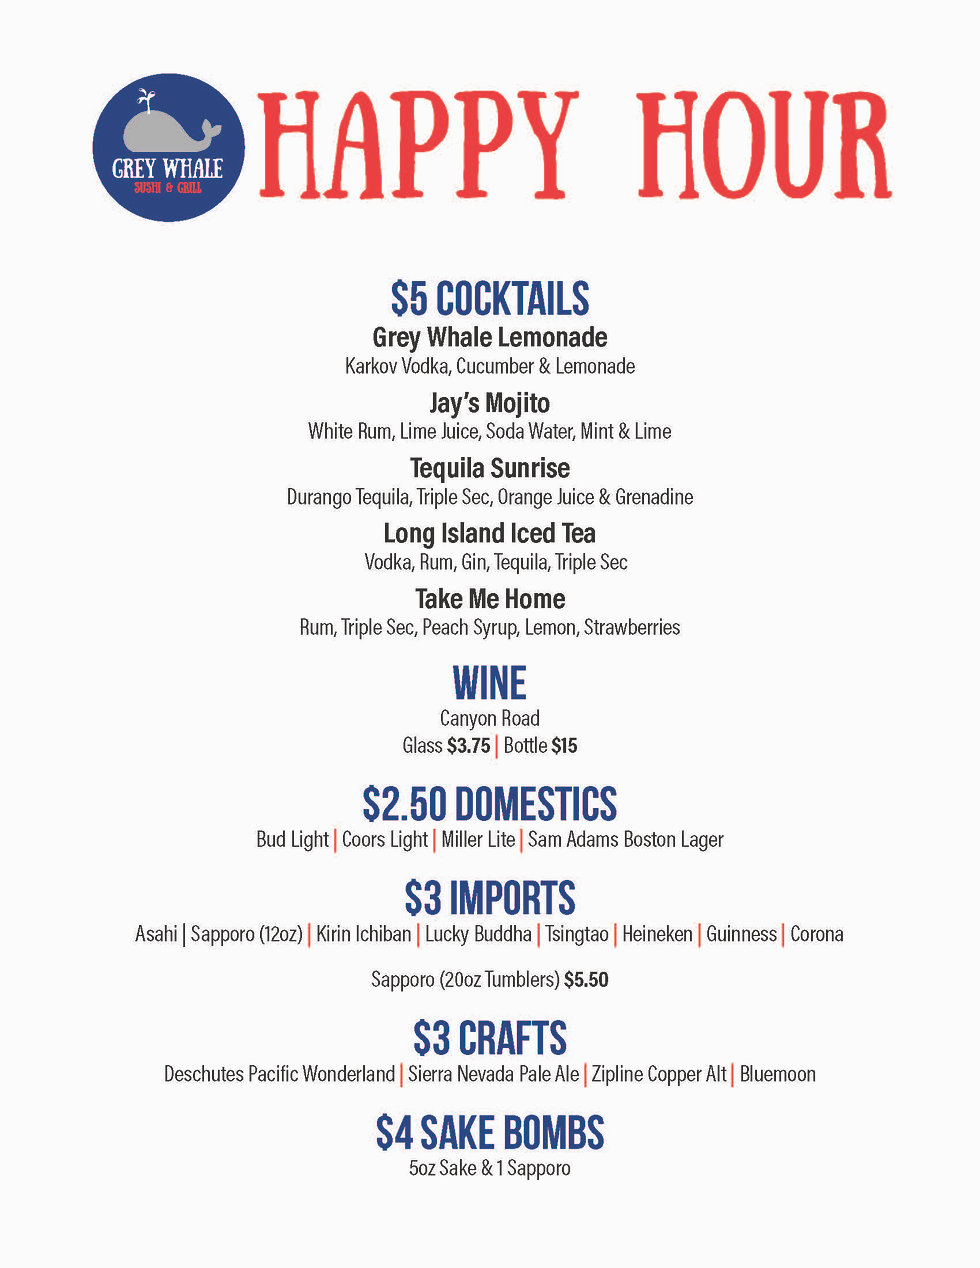 Grey Whale Happy Hour menu_04.2021_PROOF